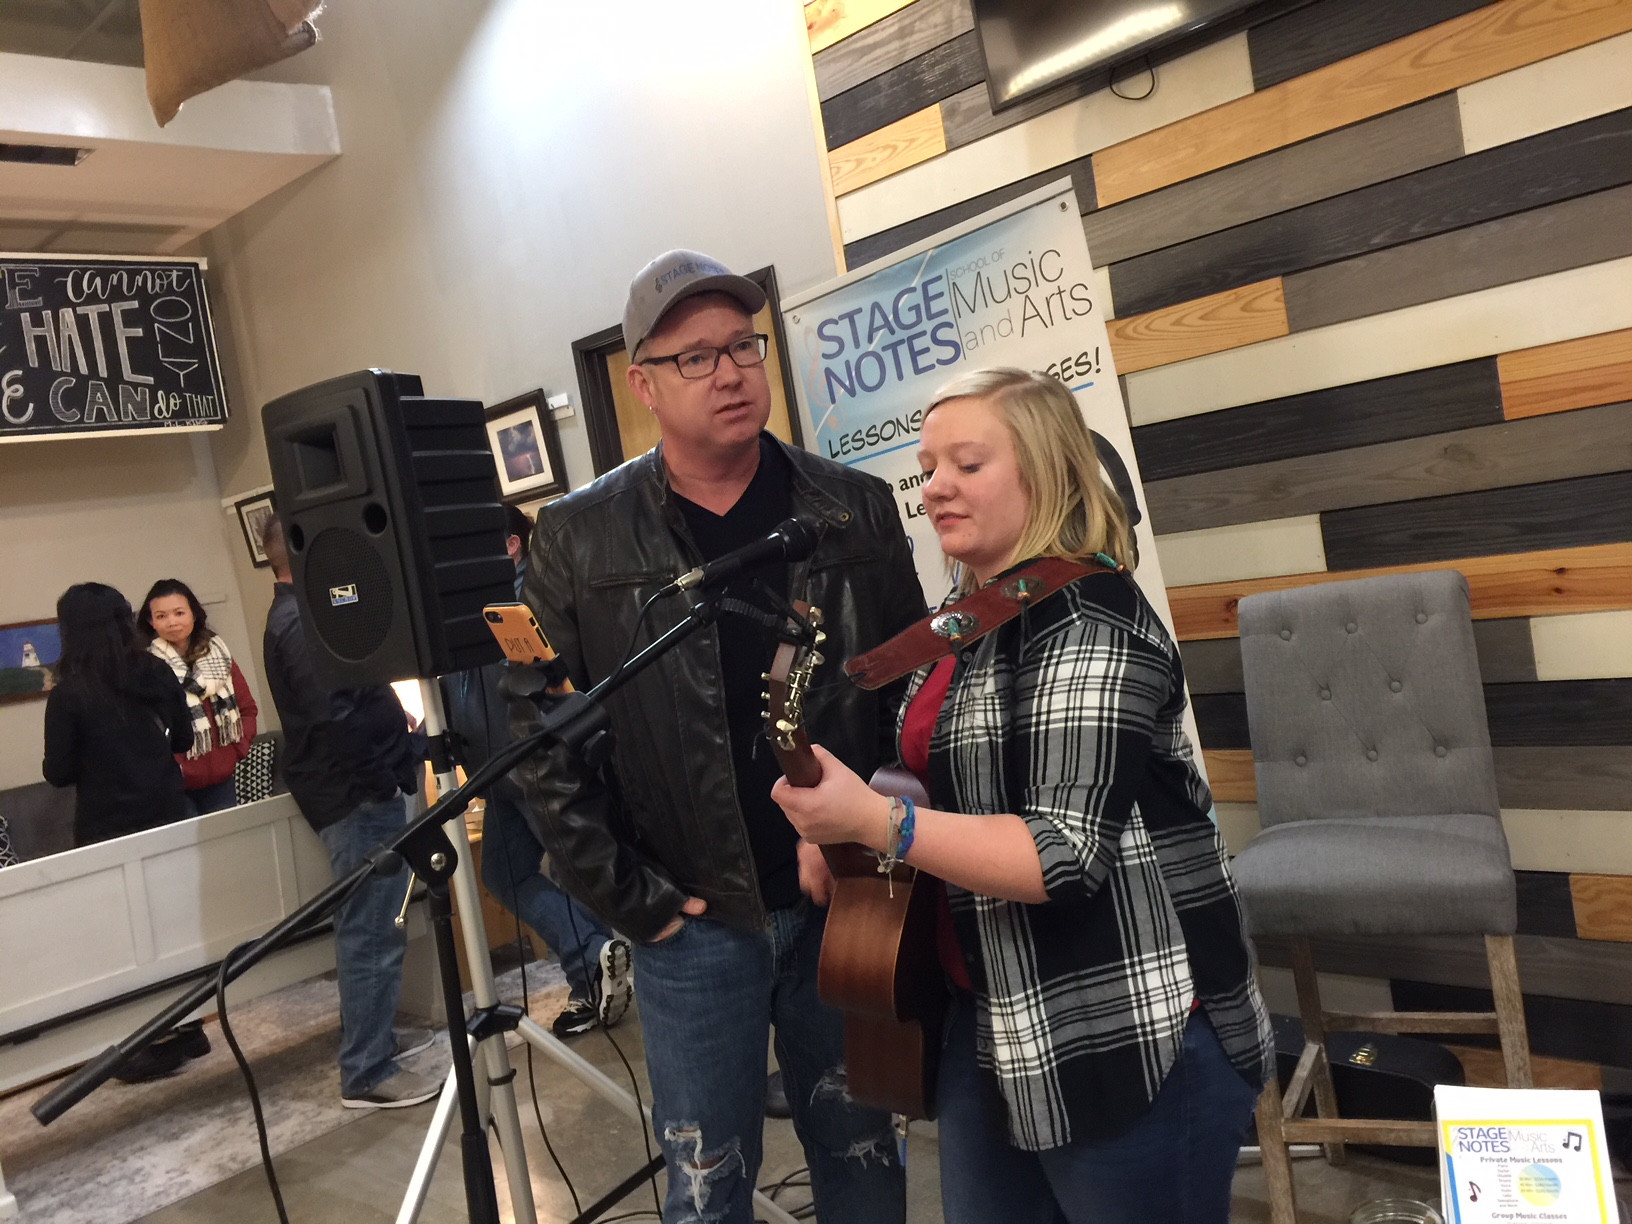 Singer Cassidy Ford with Devin Leigh of Stage Notes